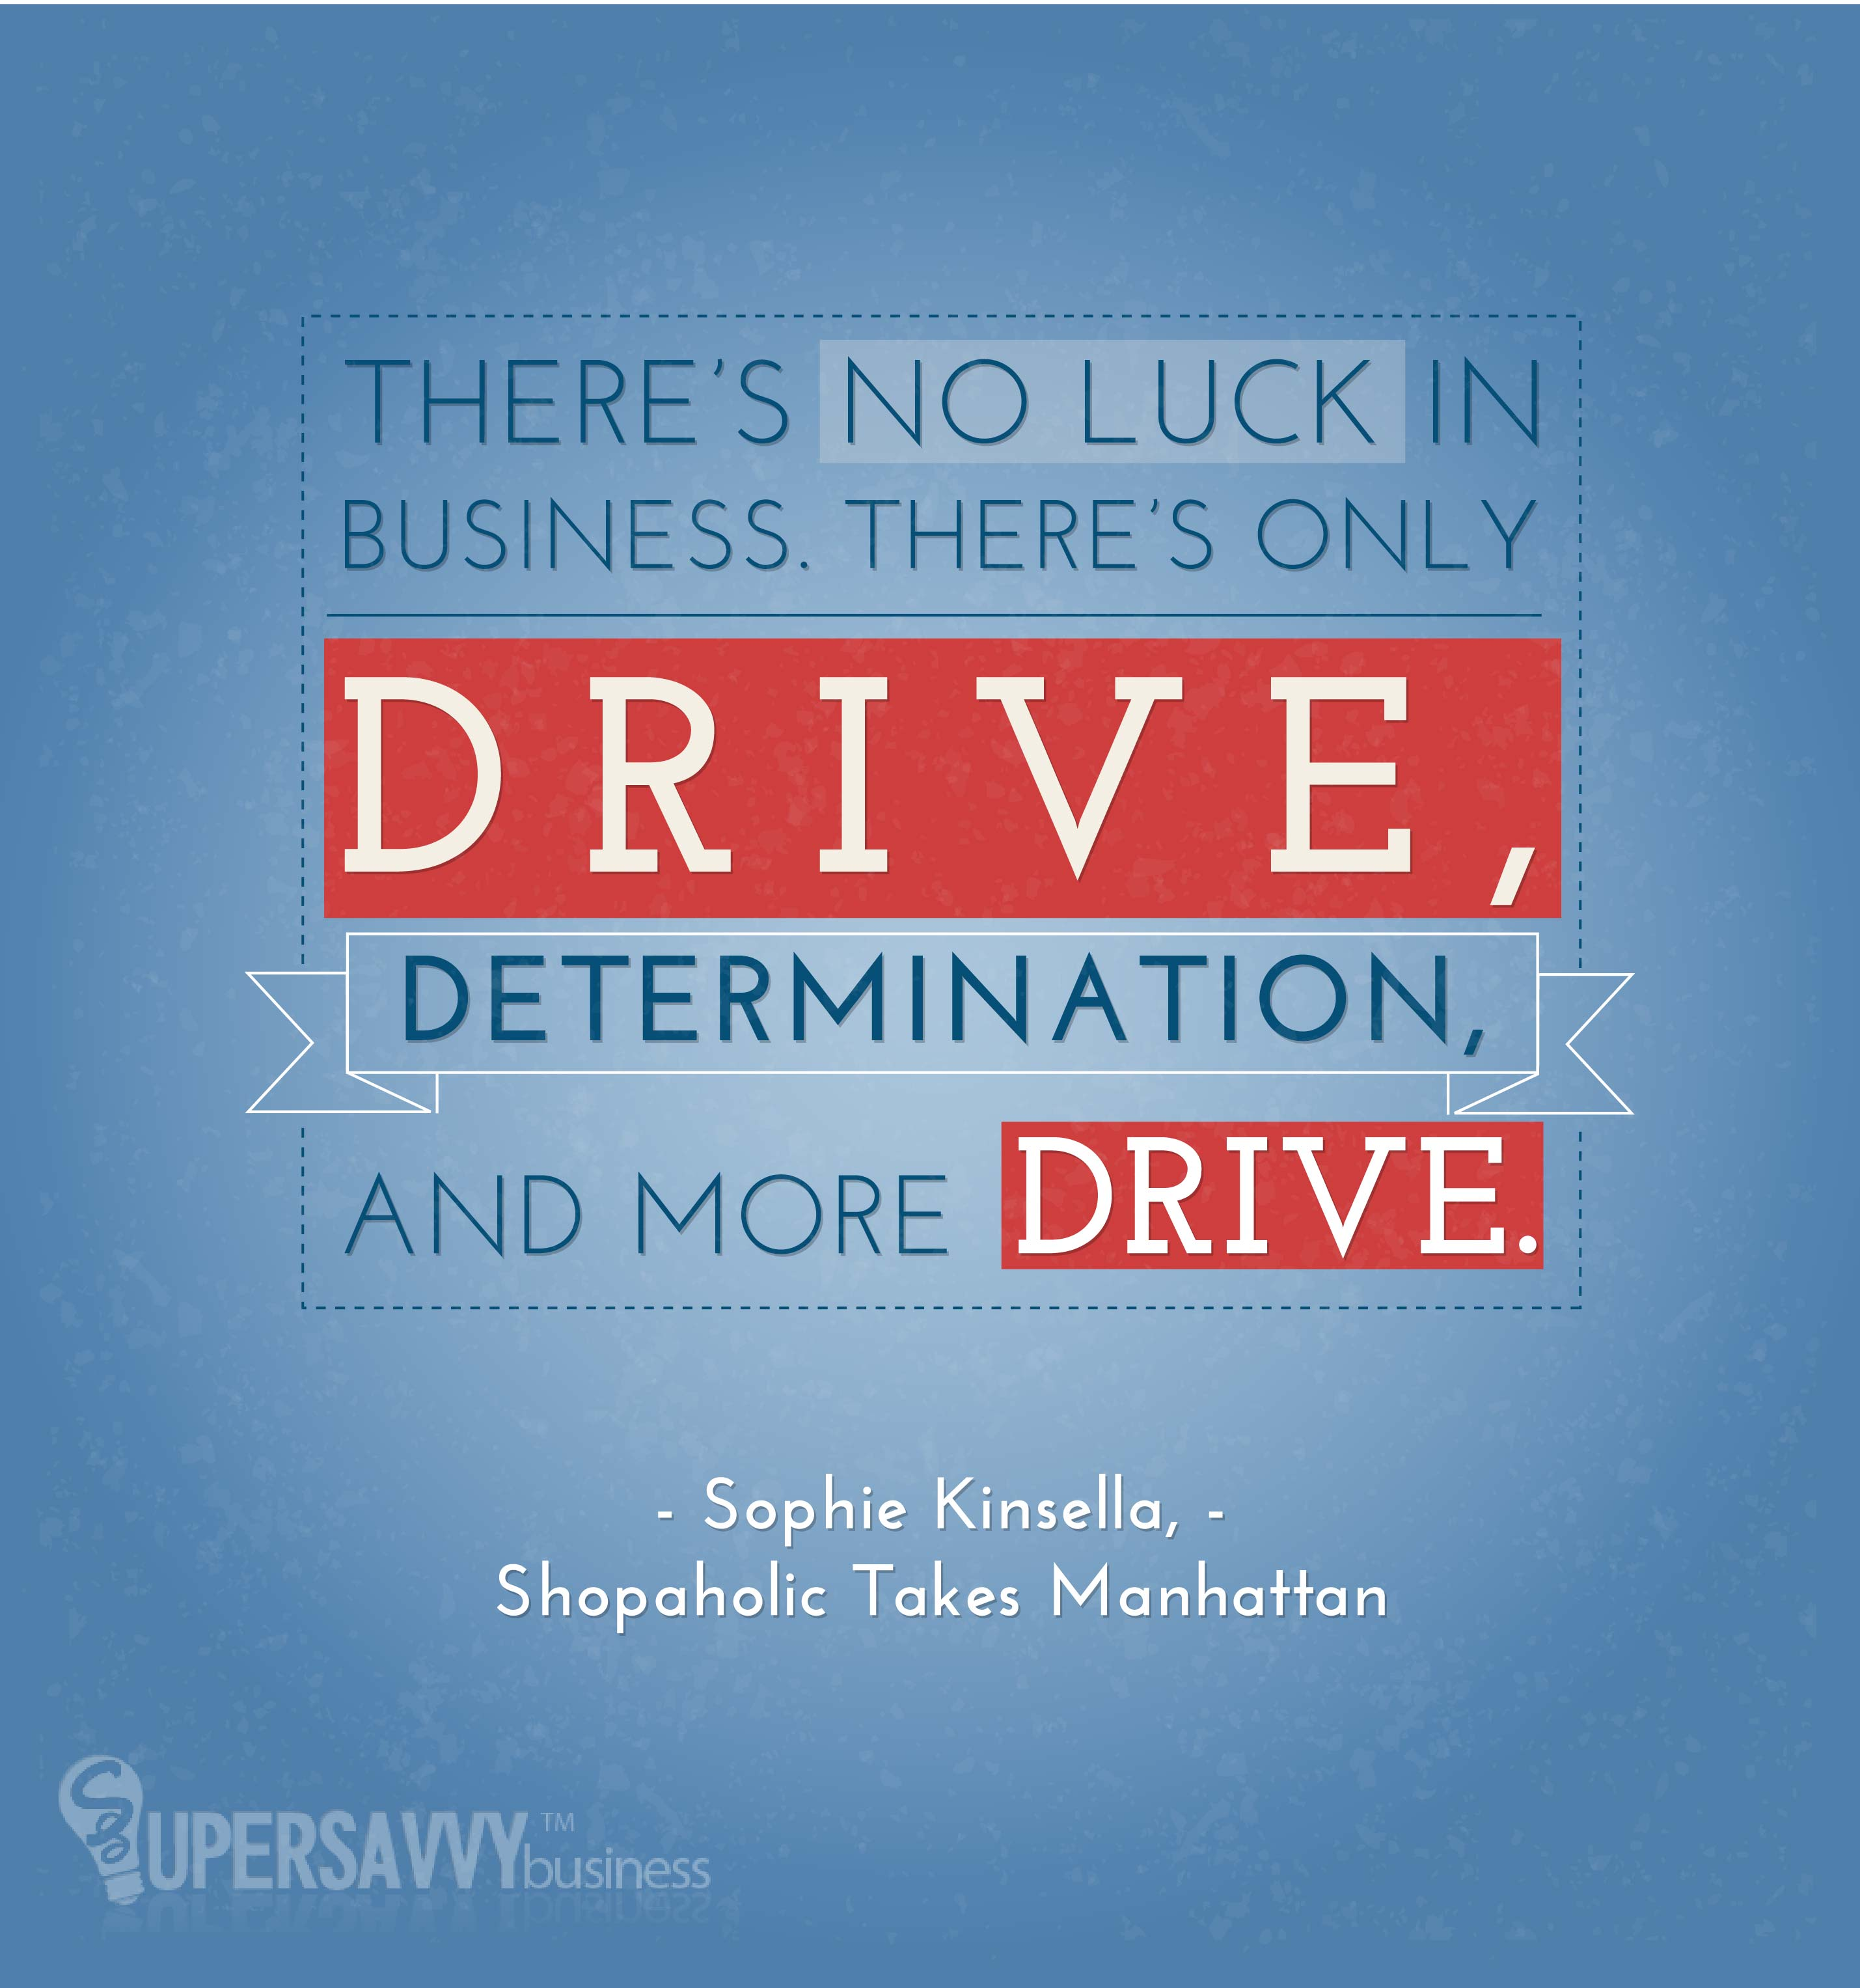 Inspirational Quotes Motivation: Quotes About Determination And Drive. QuotesGram